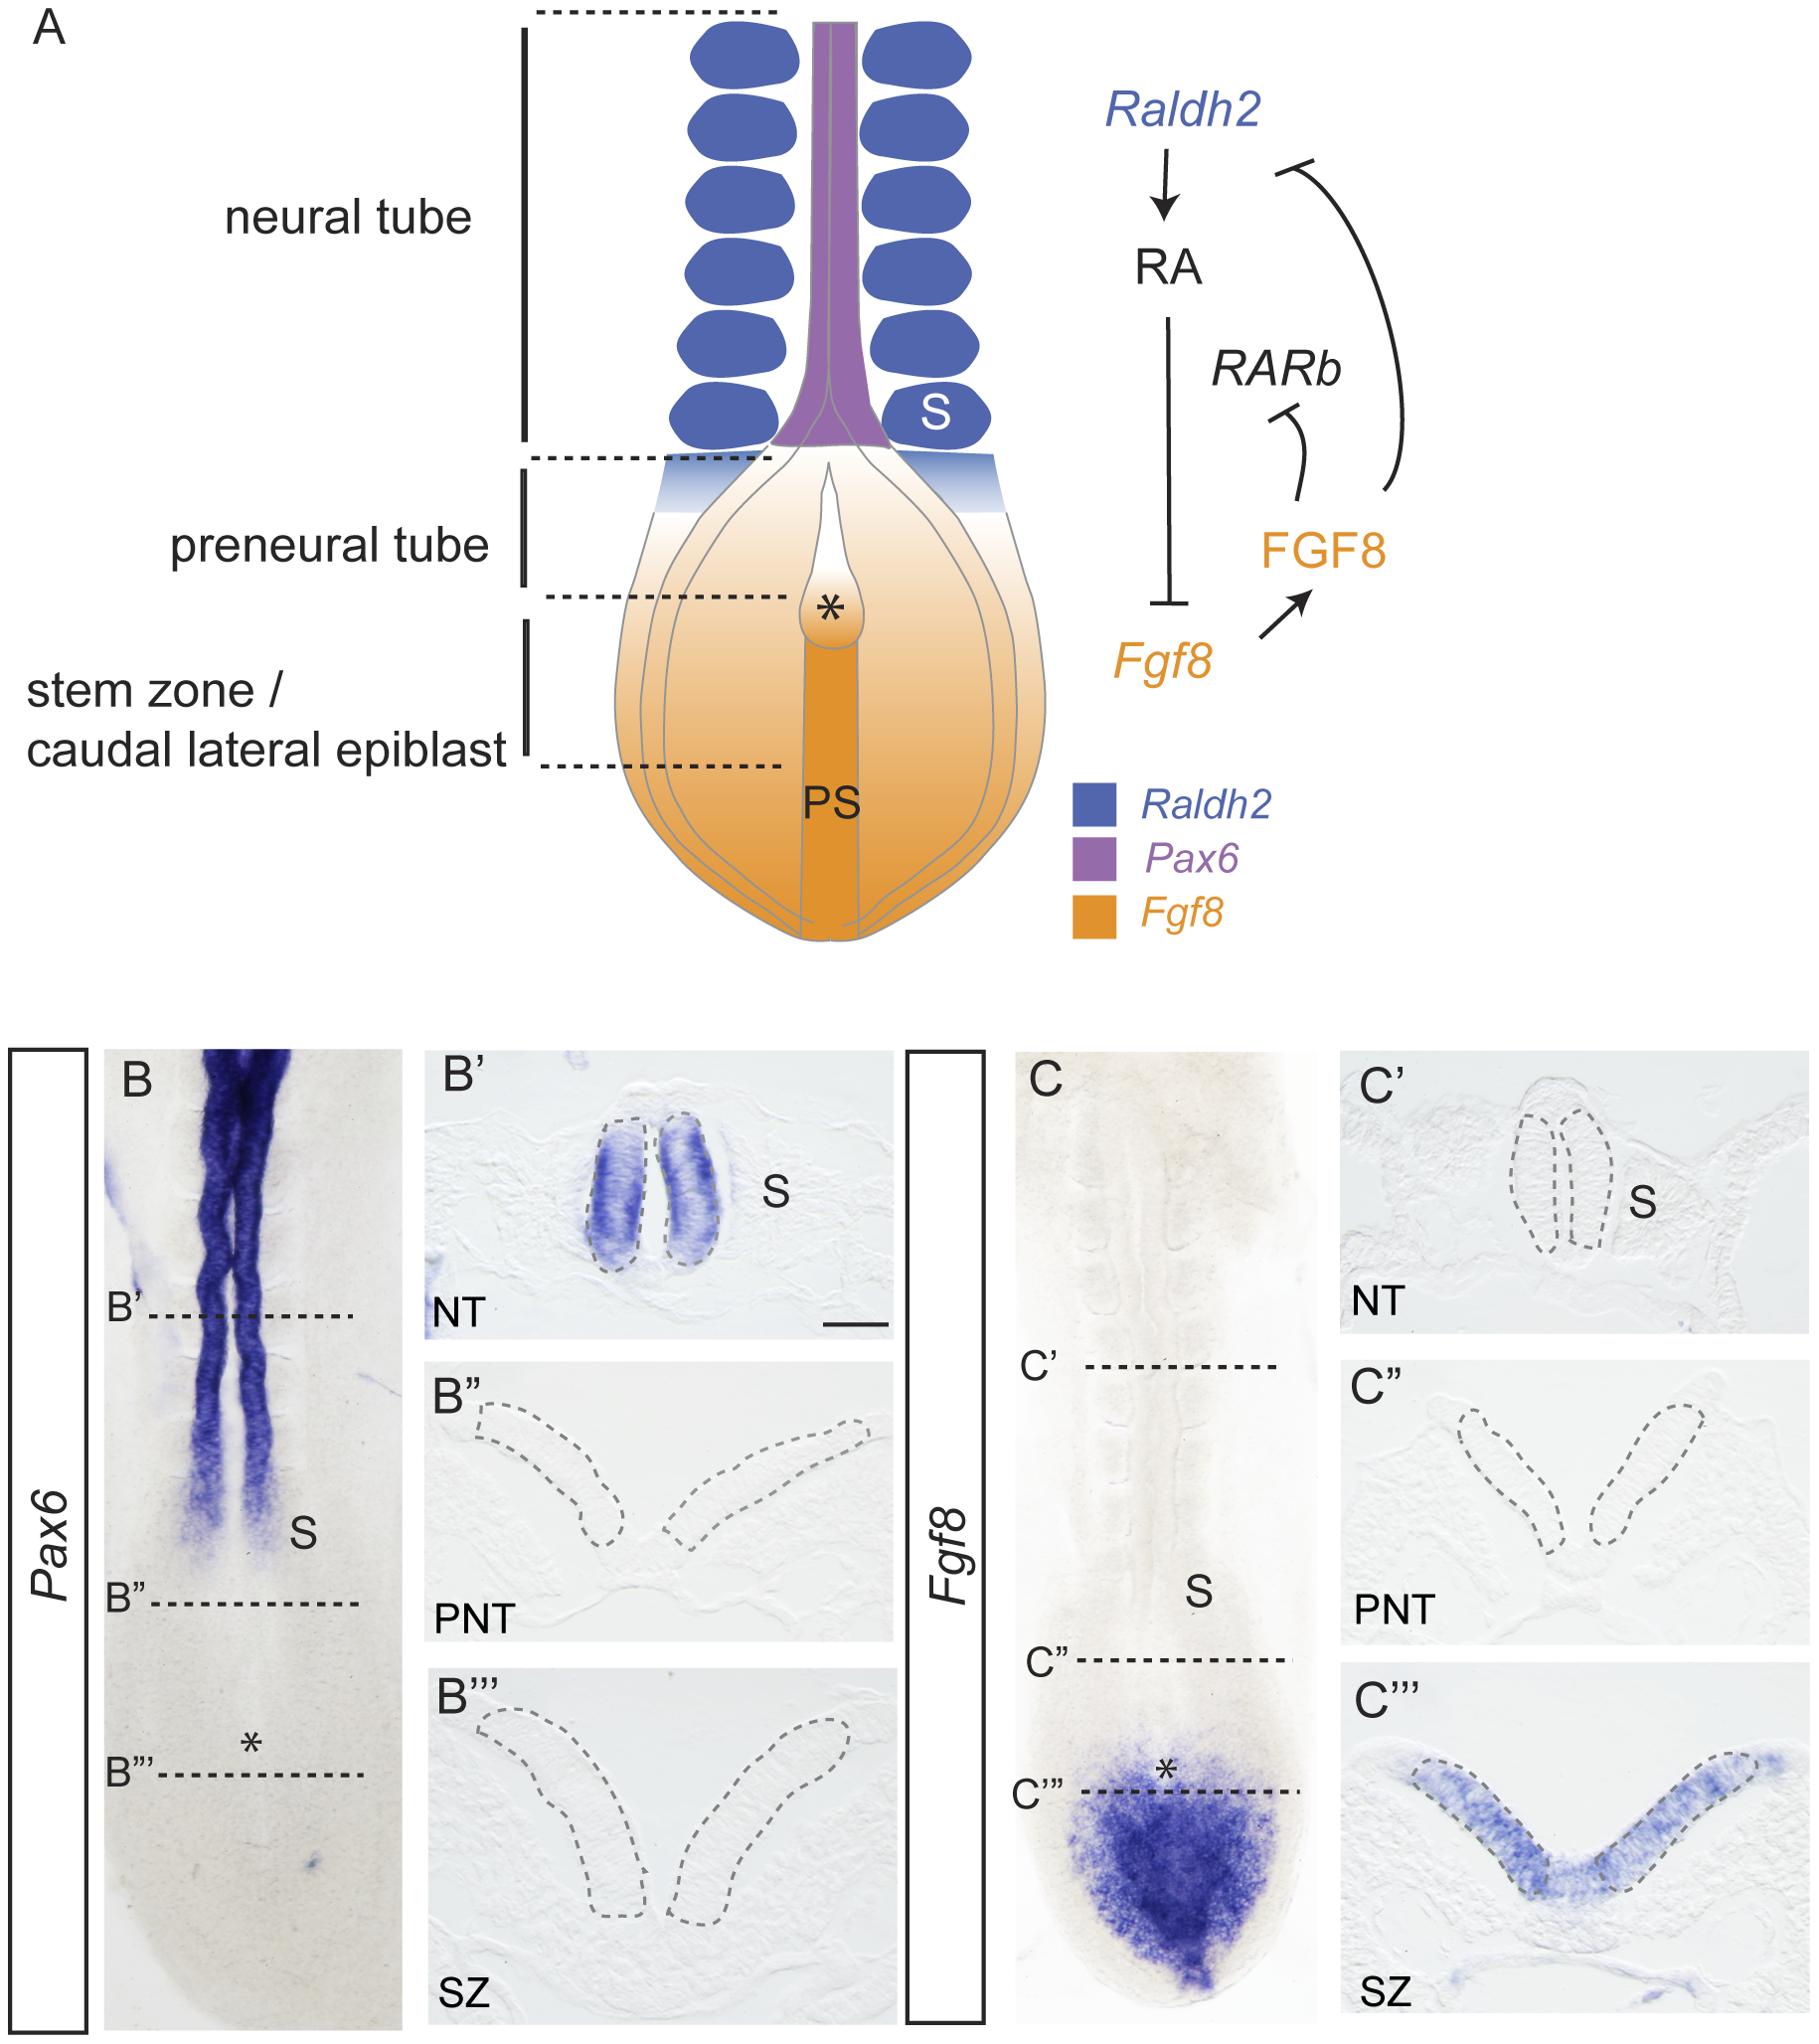 Signals regulating differentiation and expression patterns of <i>Pax6</i> and <i>Fgf8</i> along the elongating neural axis.